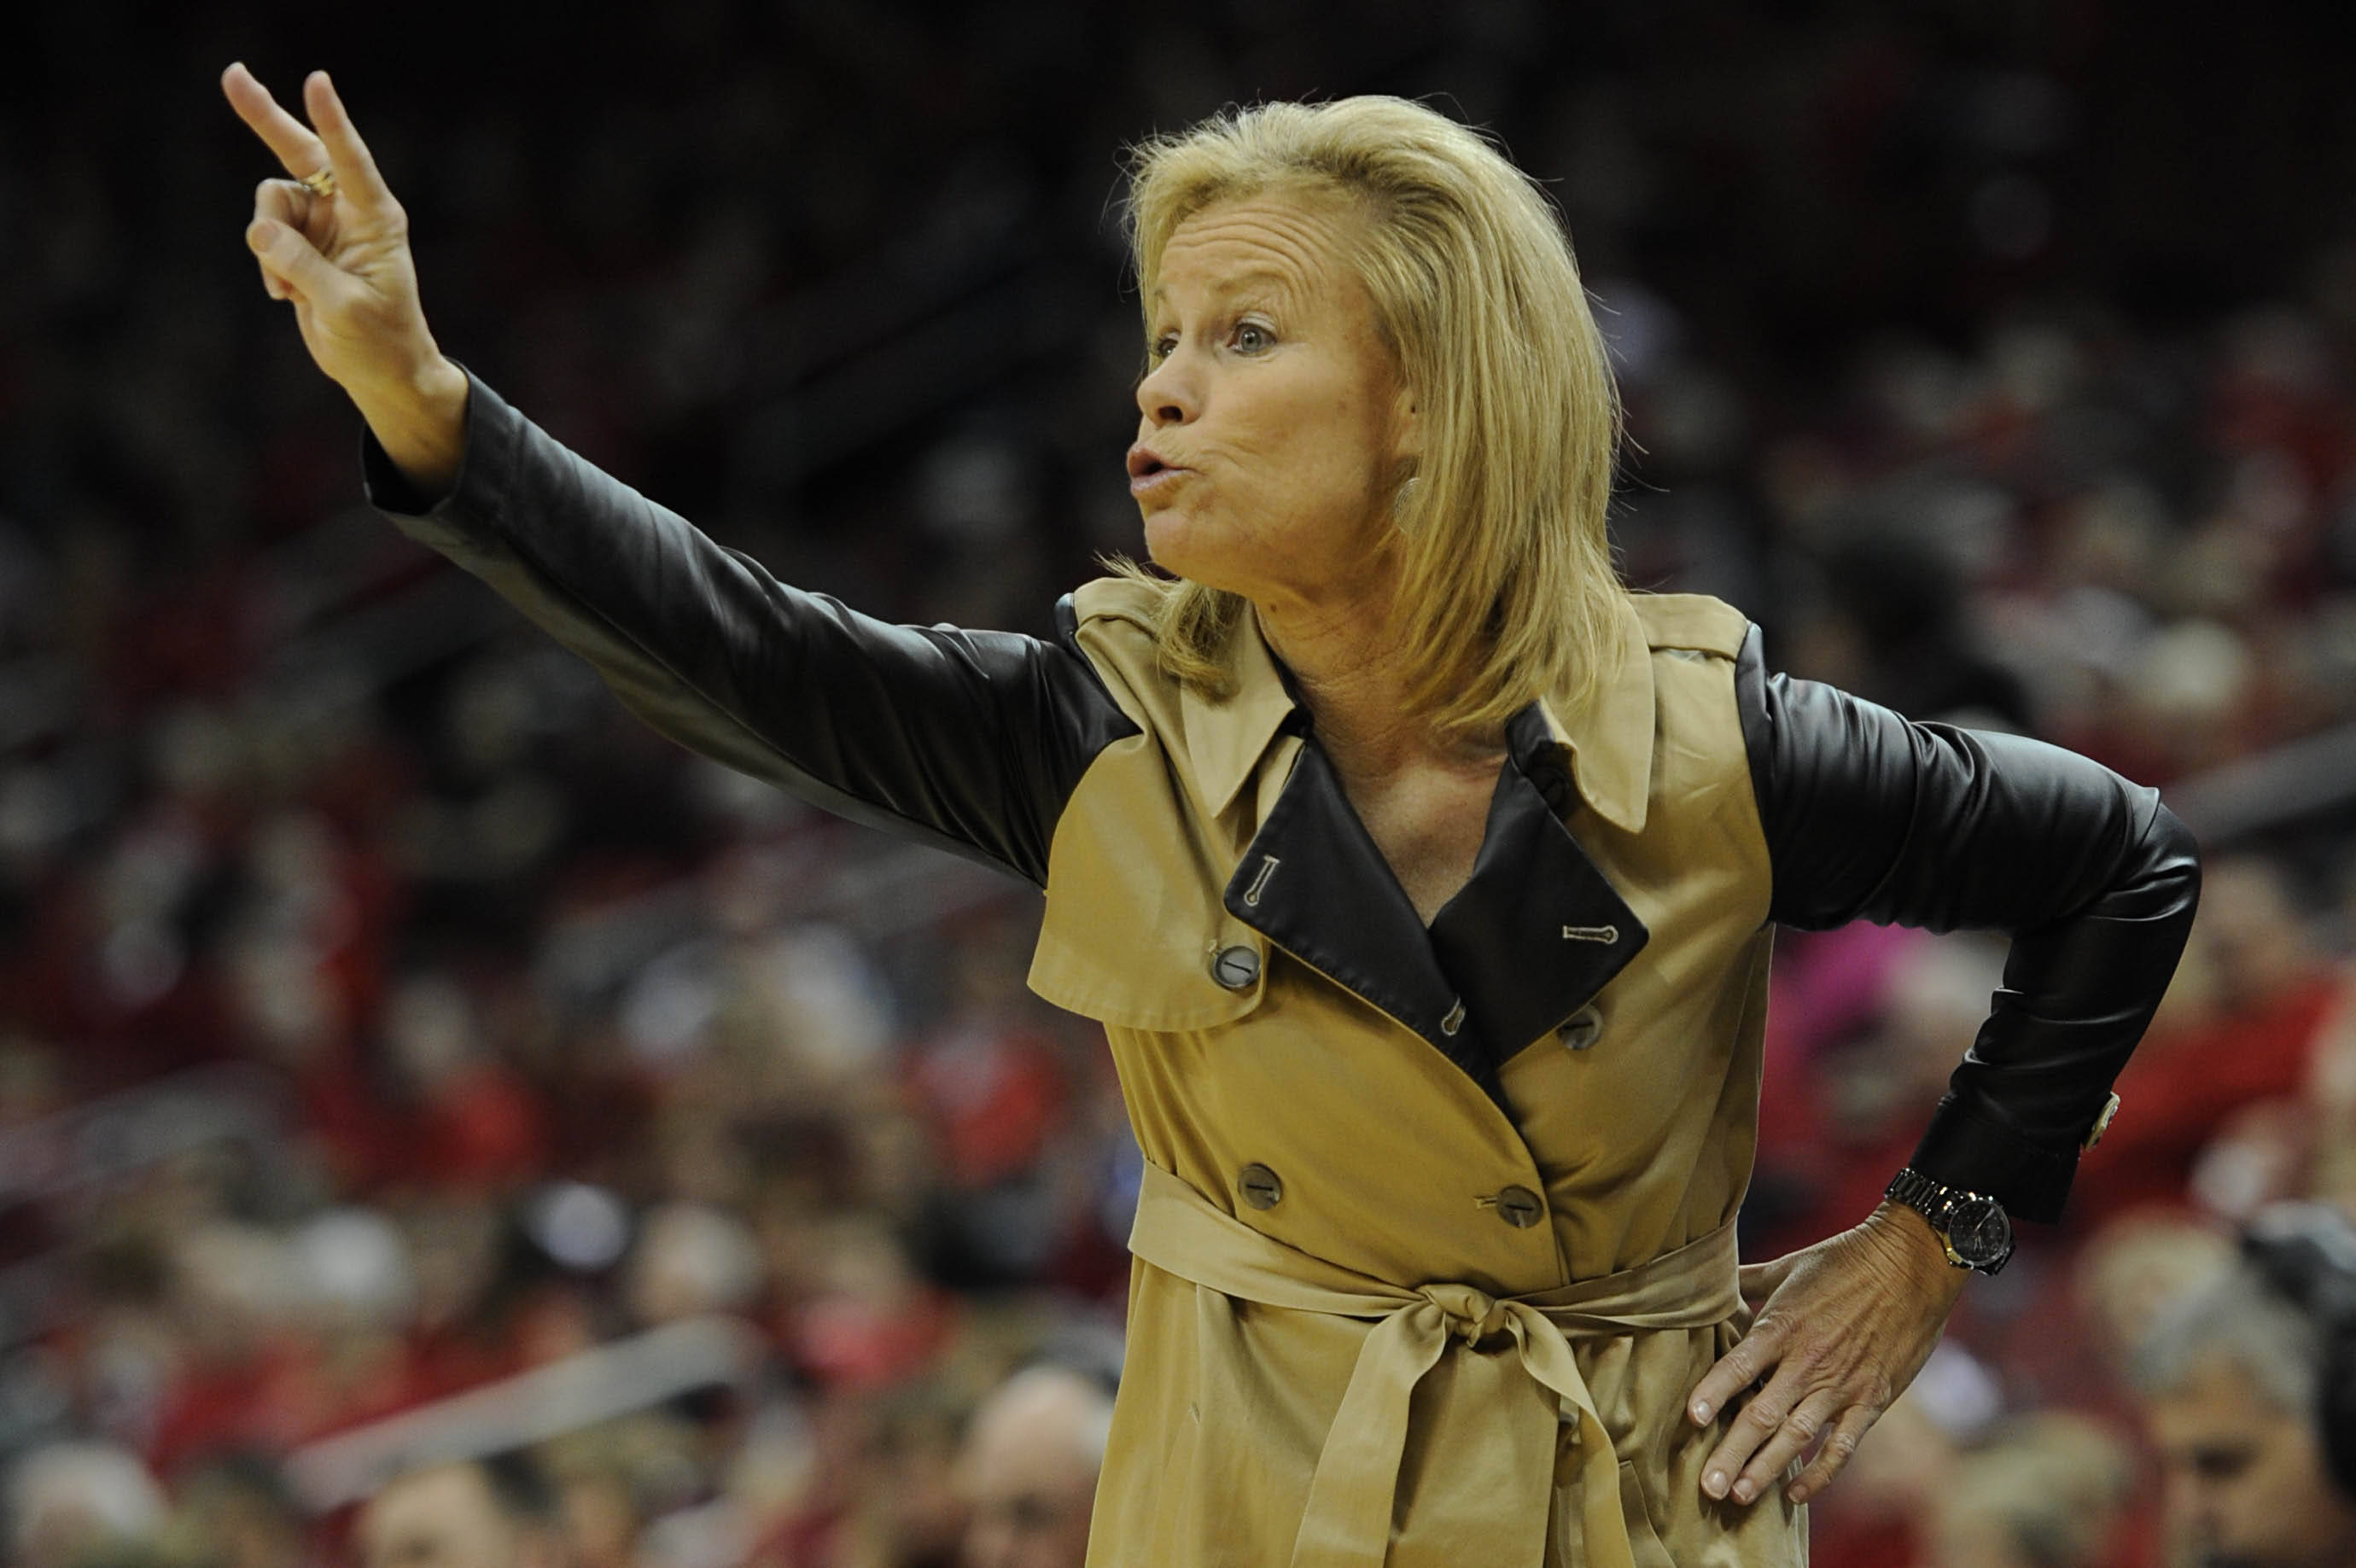 Nov 24, 2013; Louisville, KY, USA; Florida State Seminoles head coach Sue Semrau calls out a play during the first half against the Louisville Cardinals at KFC YUM! Center. Mandatory Credit: Jamie Rhodes-USA TODAY Sports